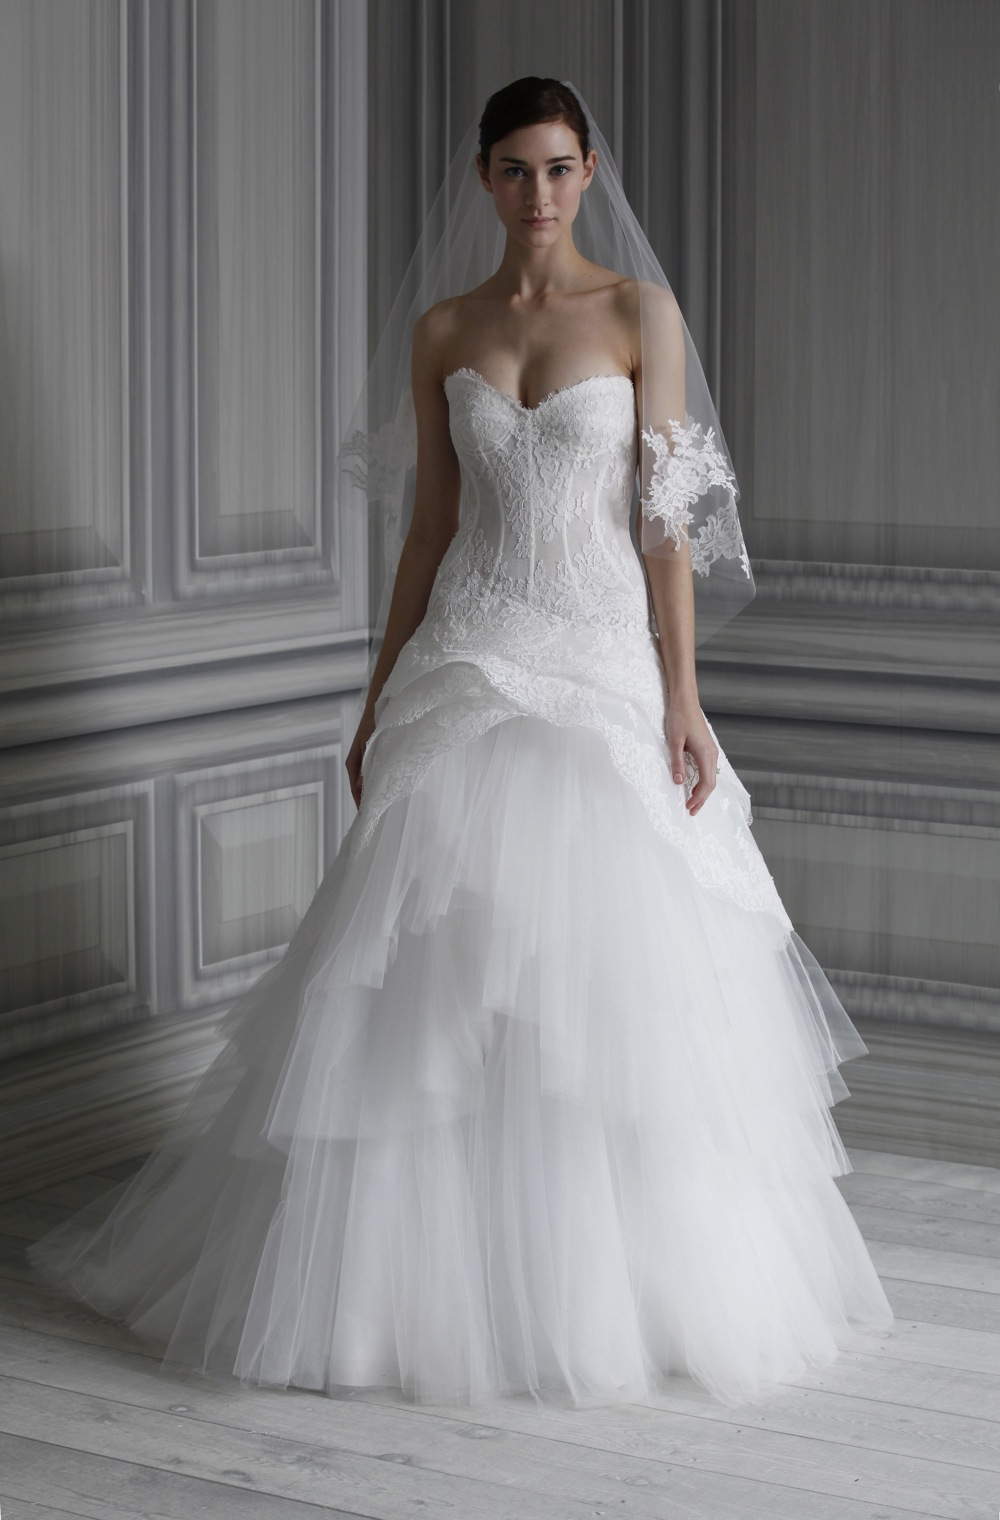 Wedding-dress-monique-lhuillier-bridal-gowns-spring-2012-pauline.original